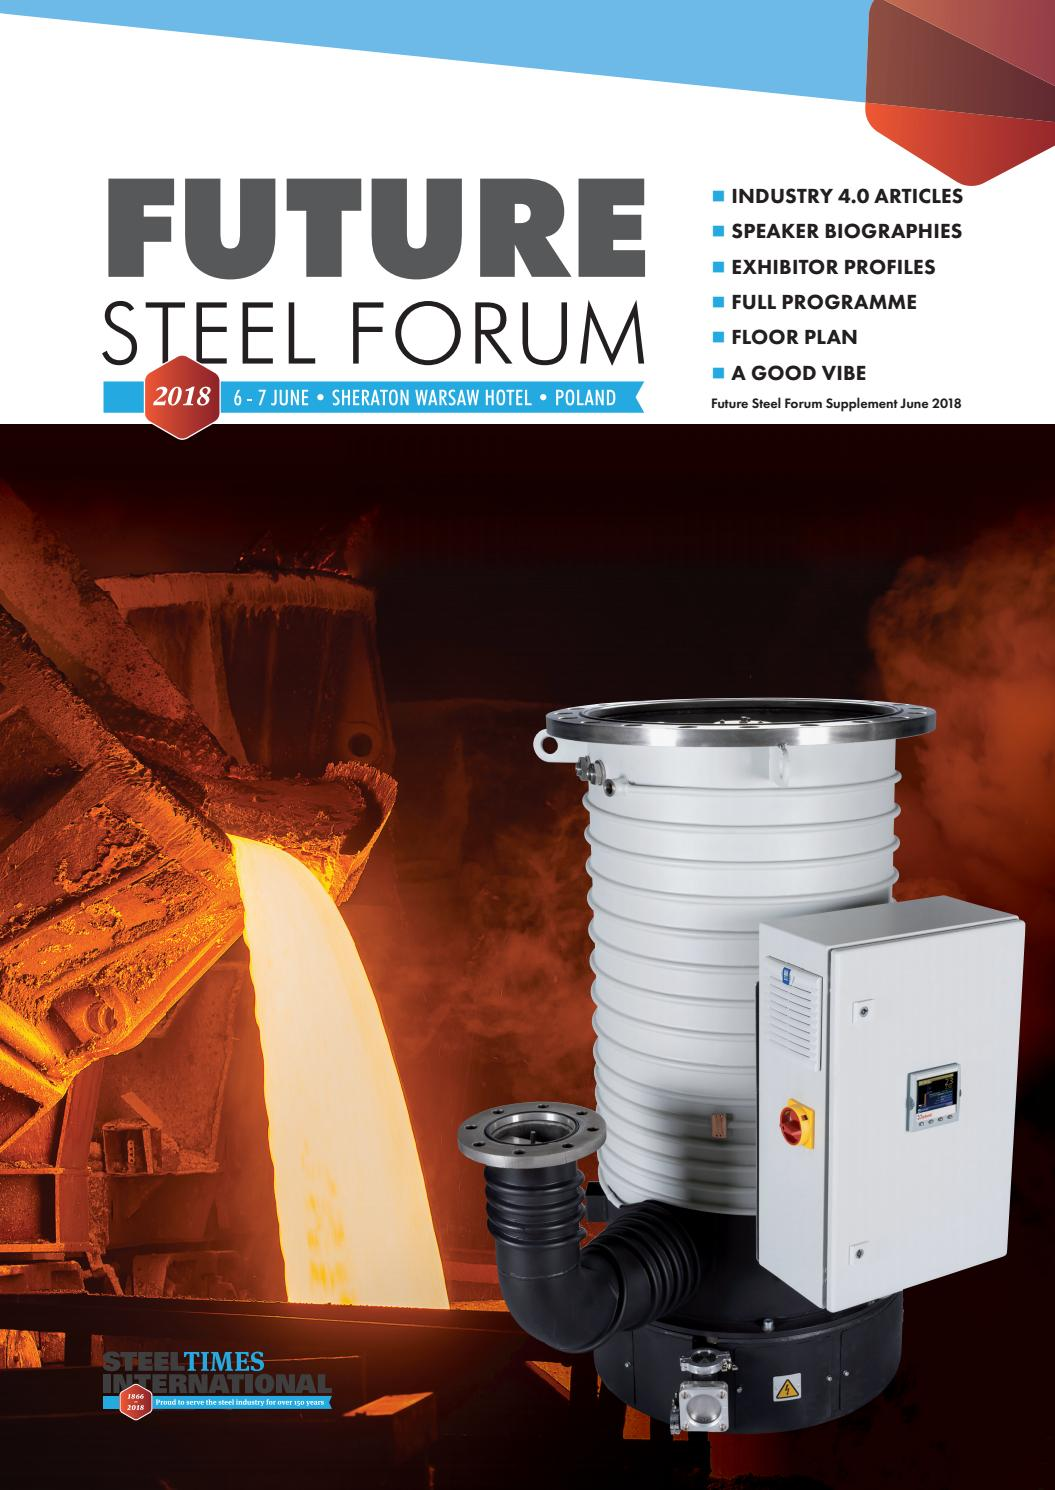 Future Steel Forum 2018 by Quartz Business Media issuu